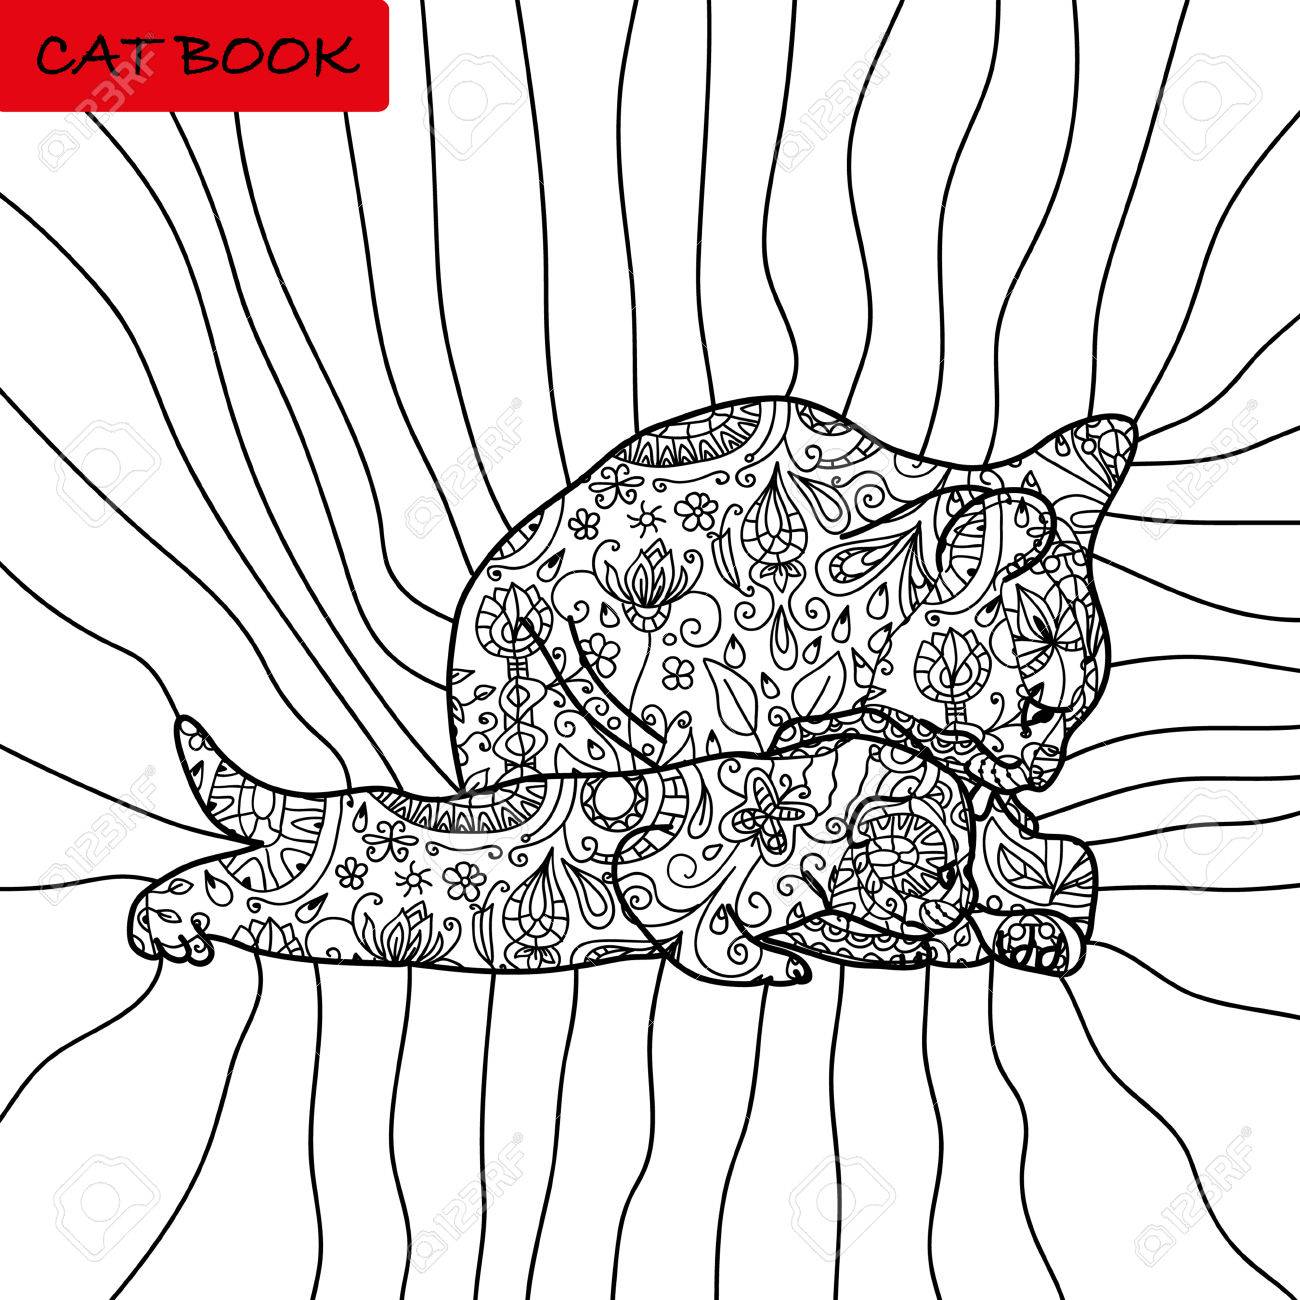 Book coloring pages for adults and children. The book of the..